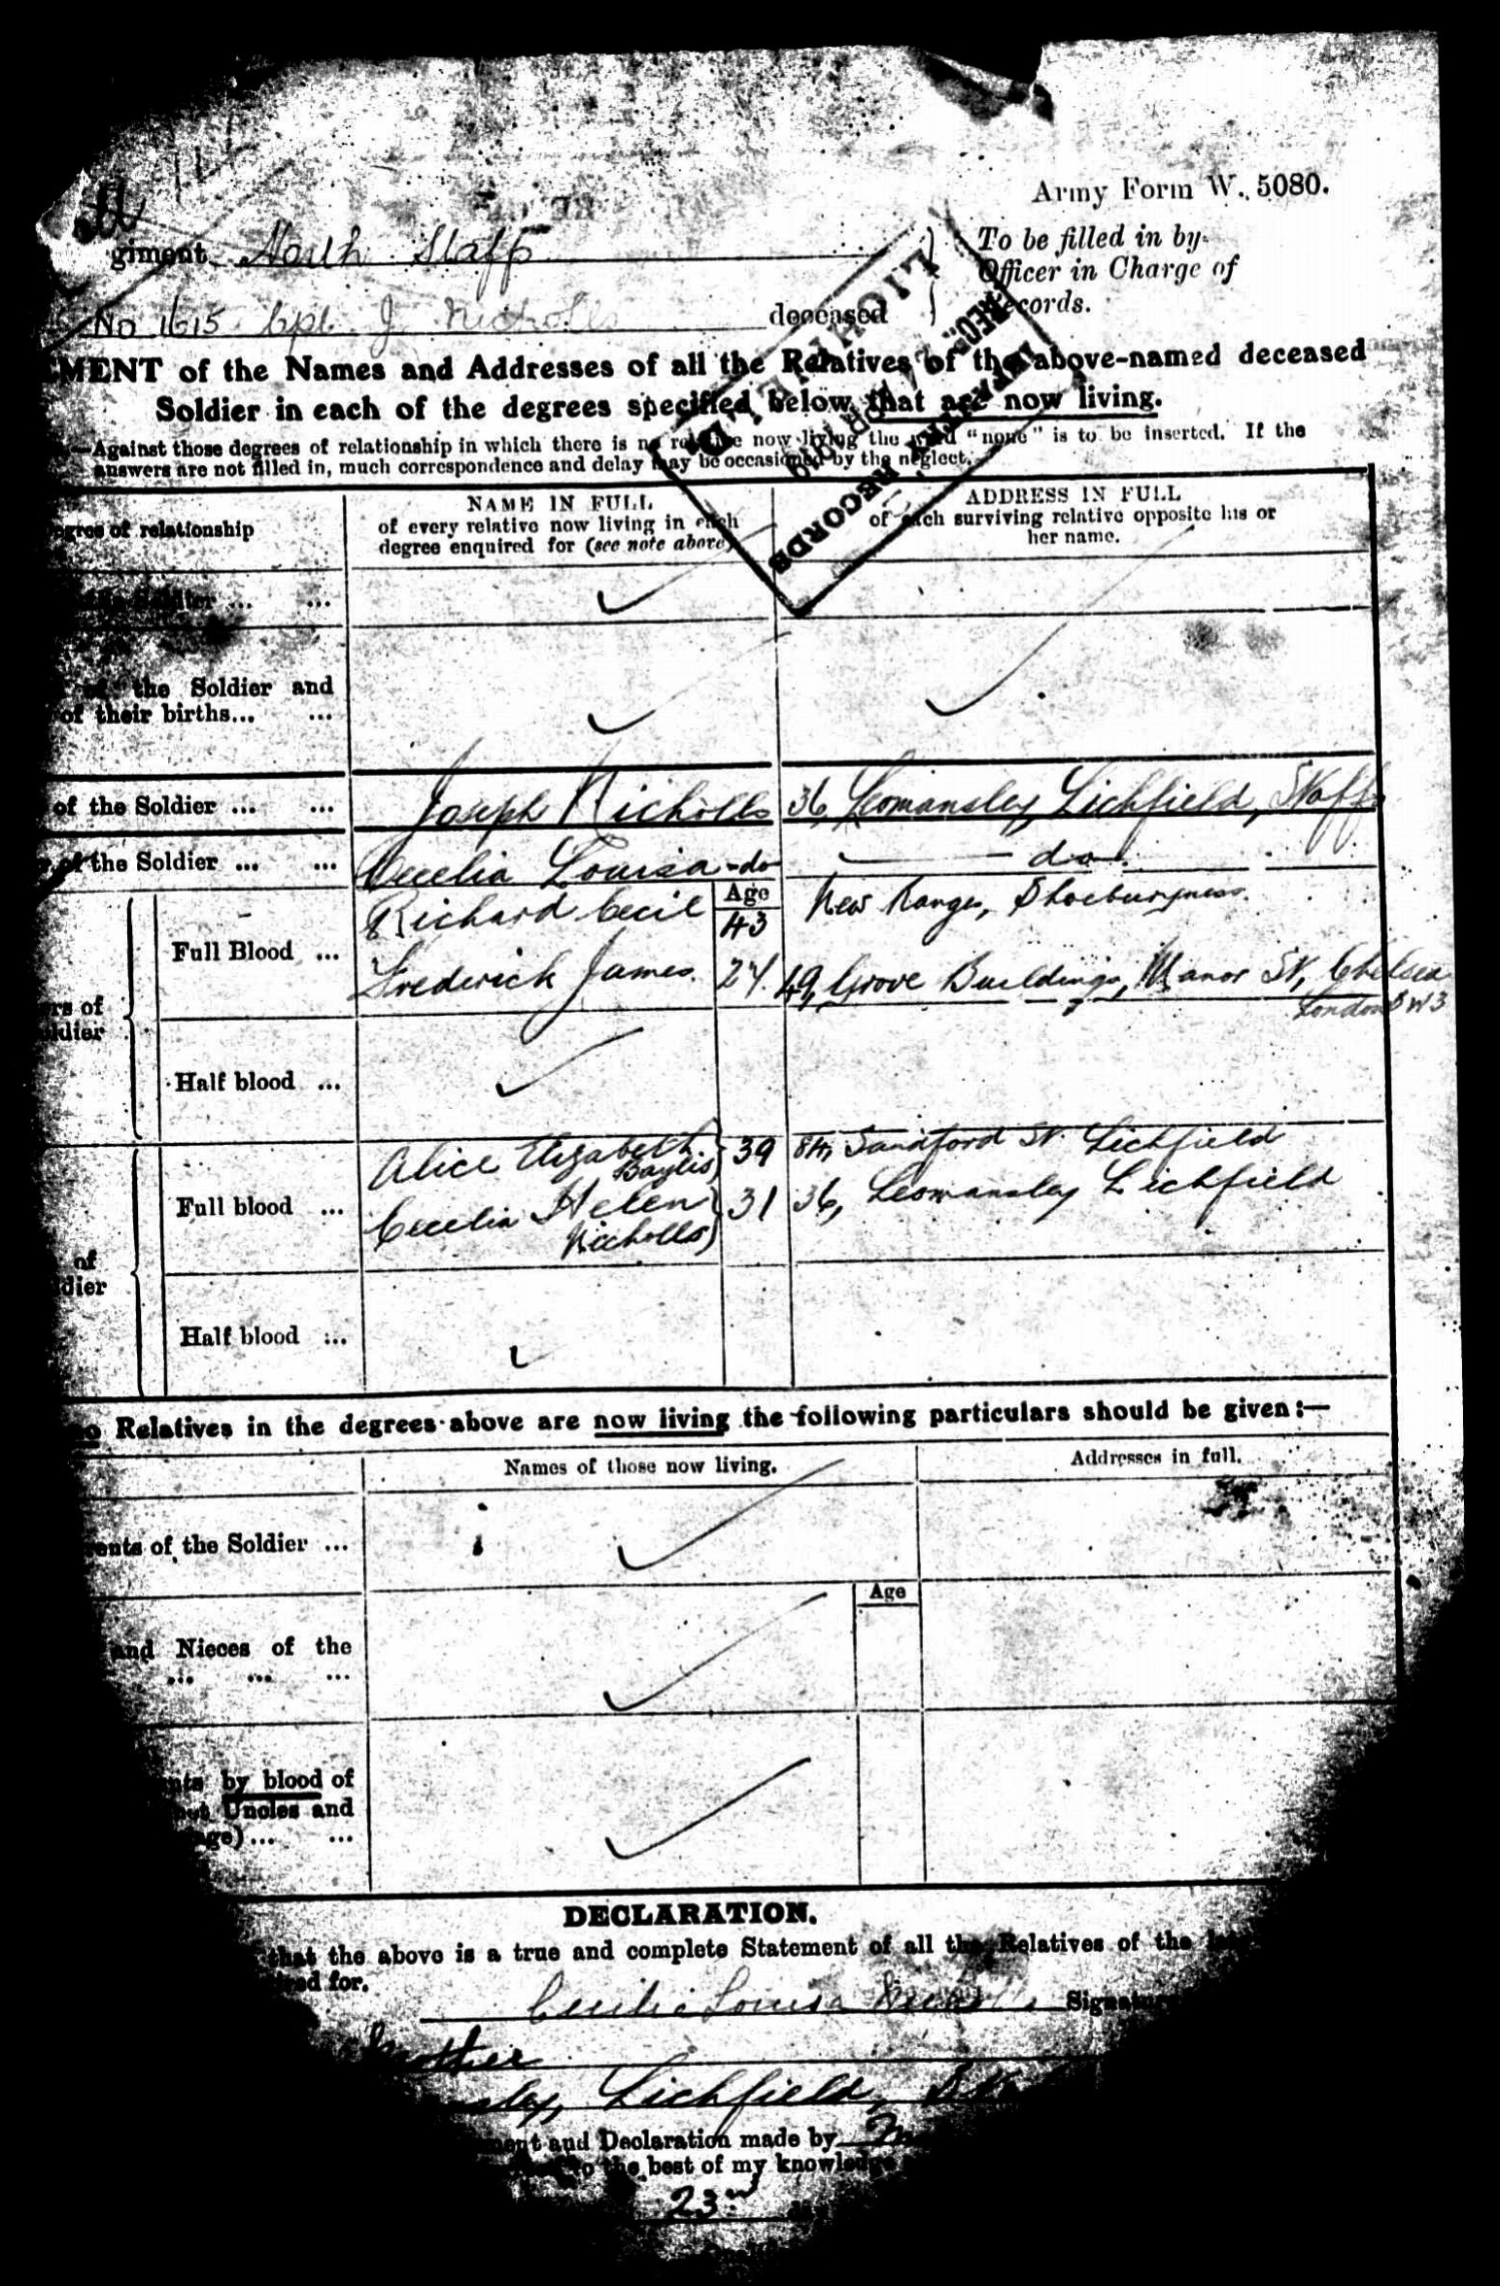 Statement of living relatives from the military record of John Charles Joseph Nicholls